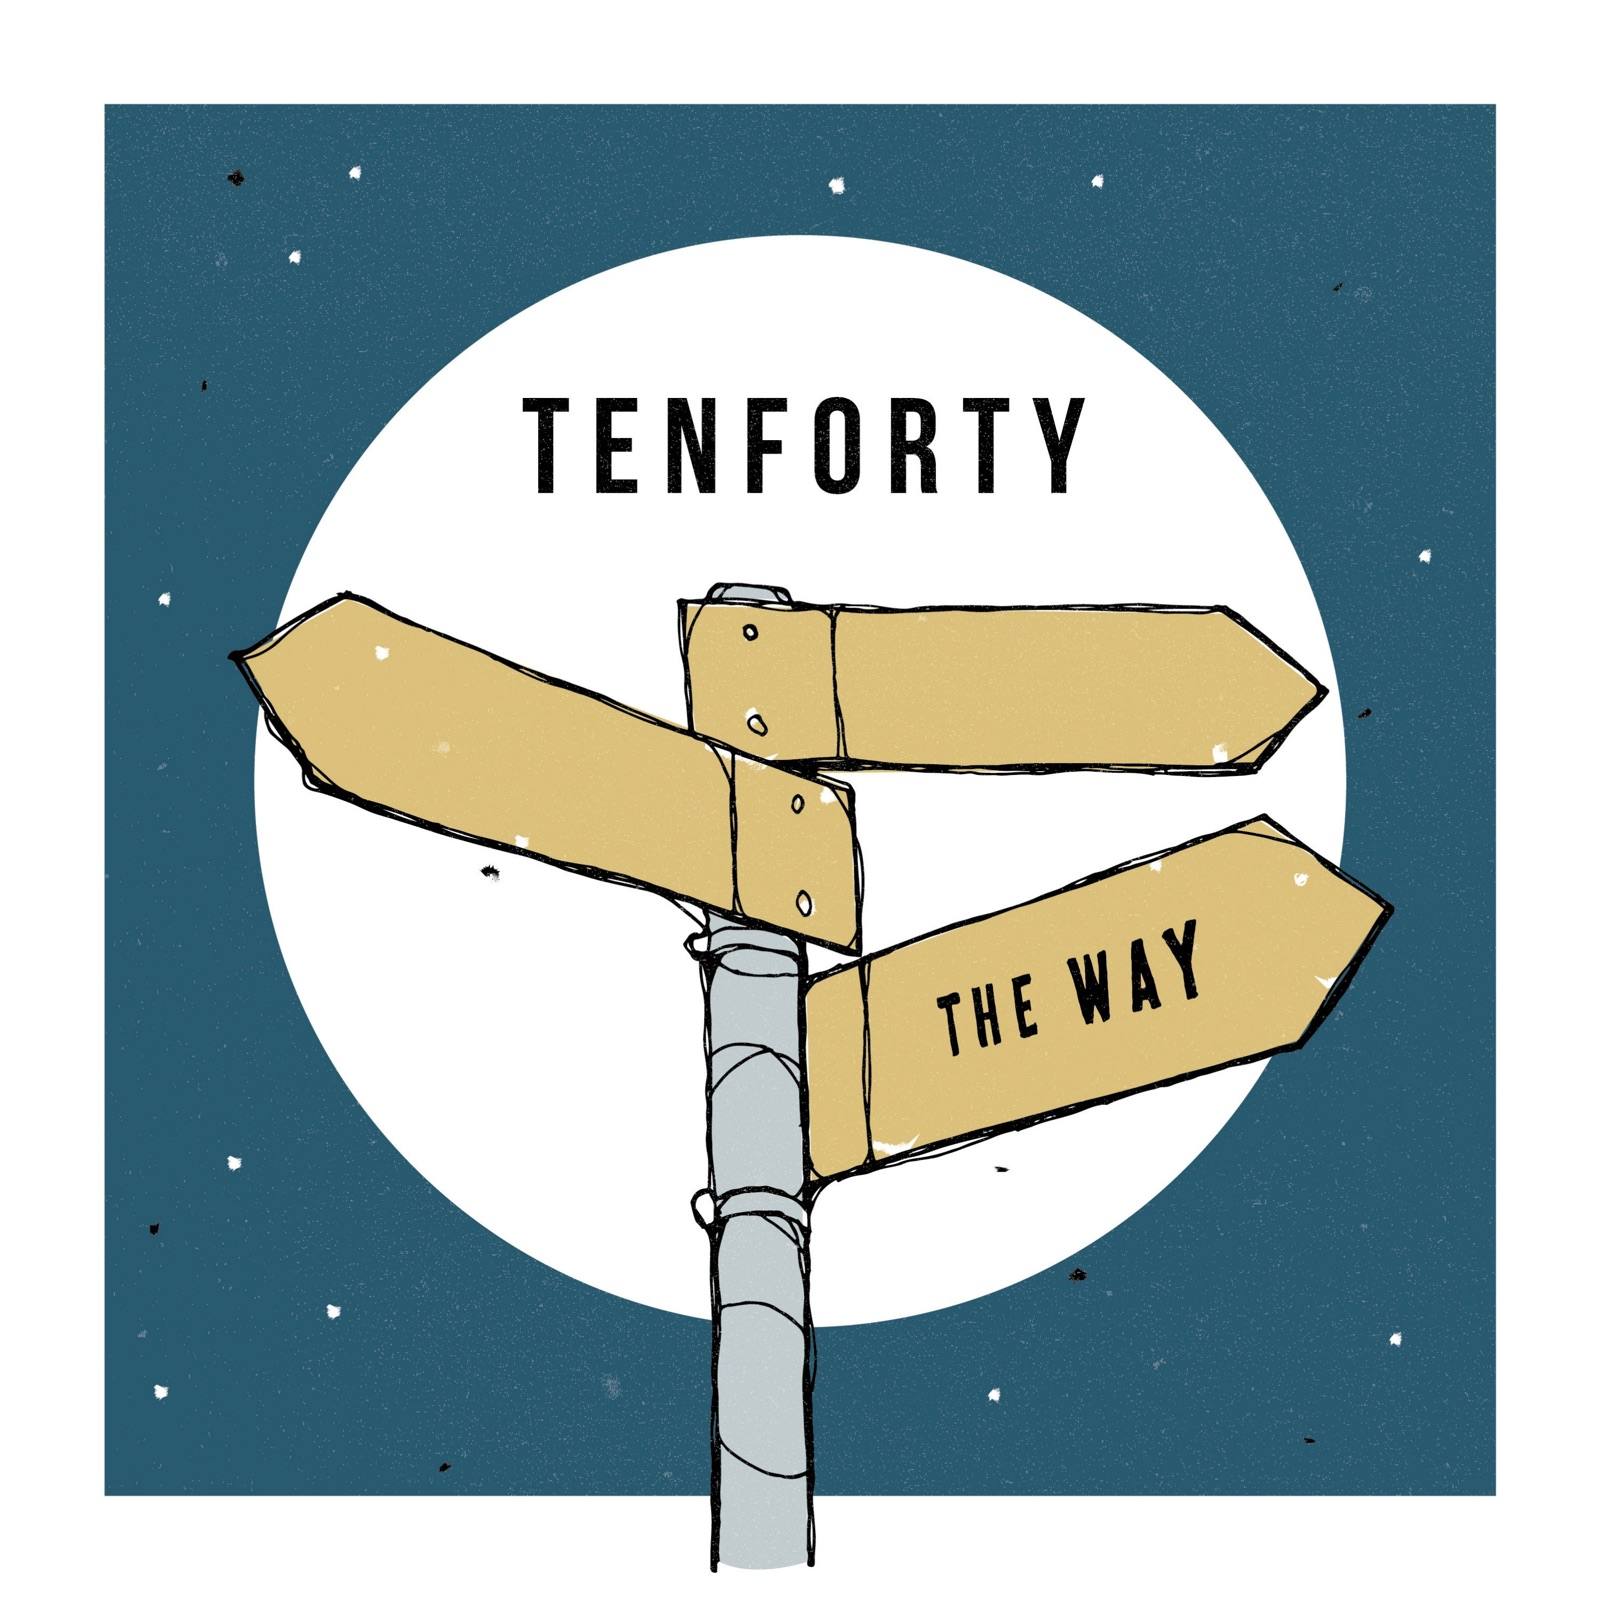 Tenforty (The Way)